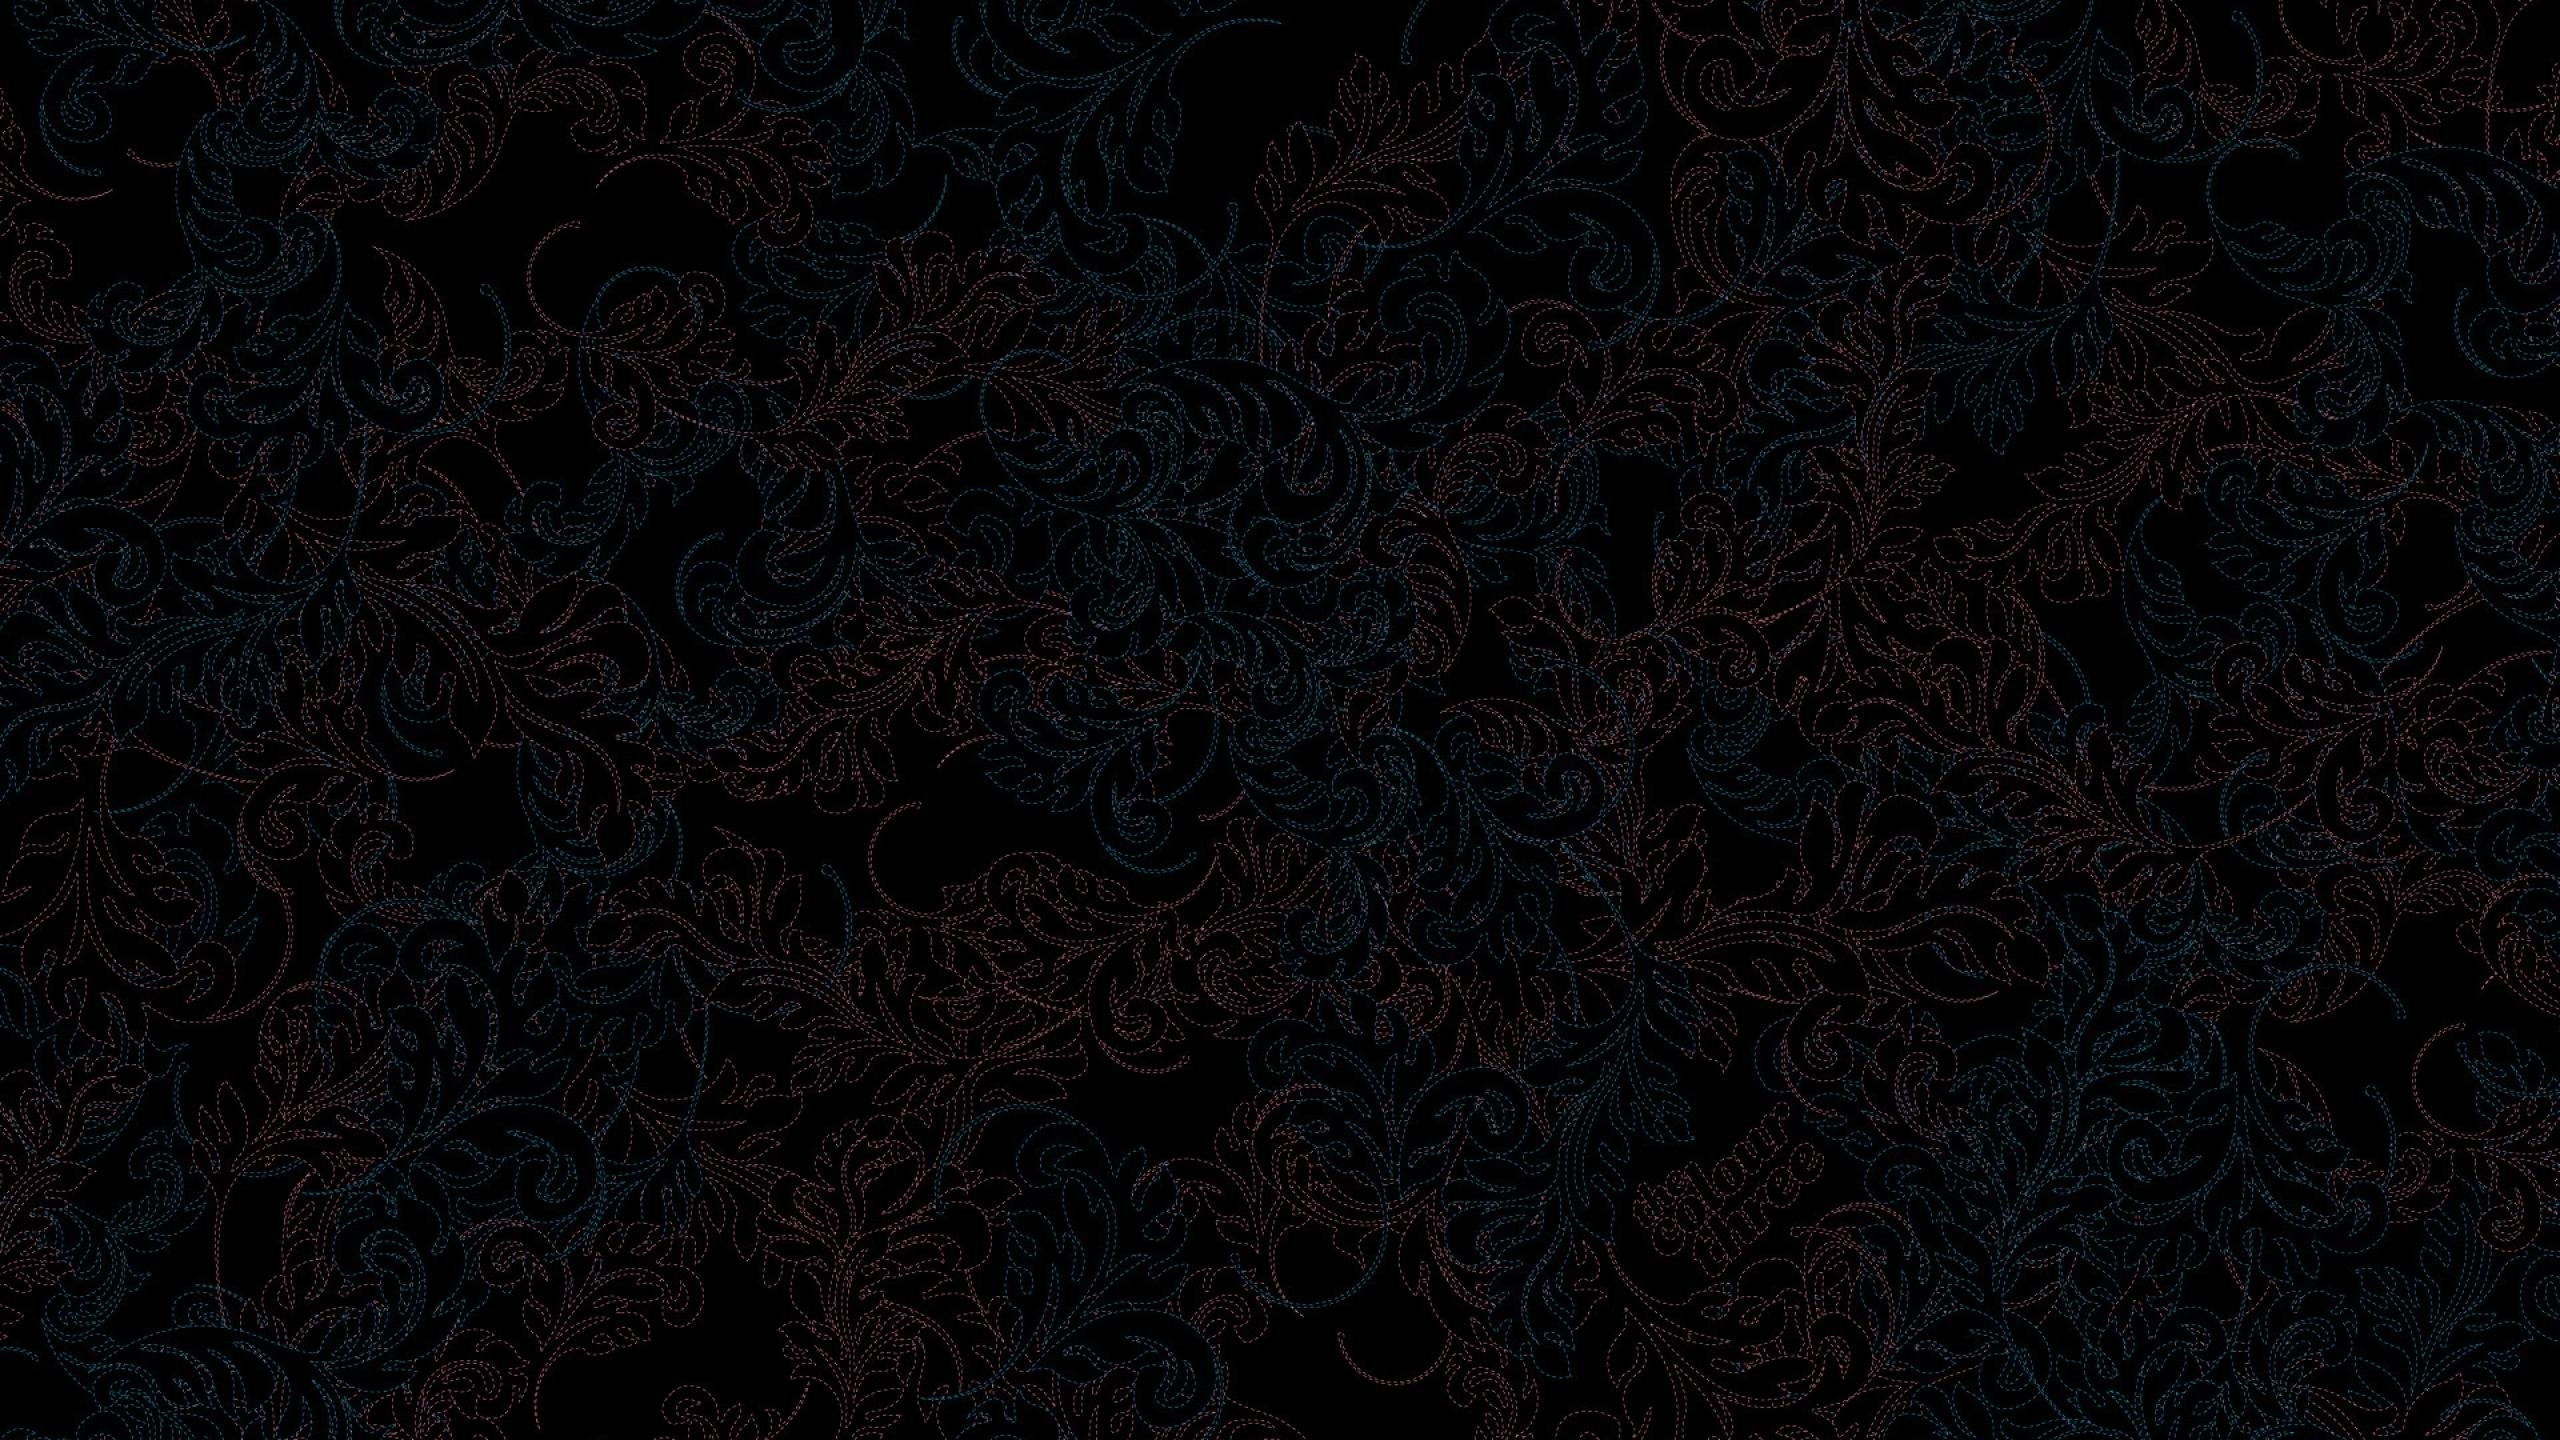 Shiny Black Wallpaper 68 images 2560x1440